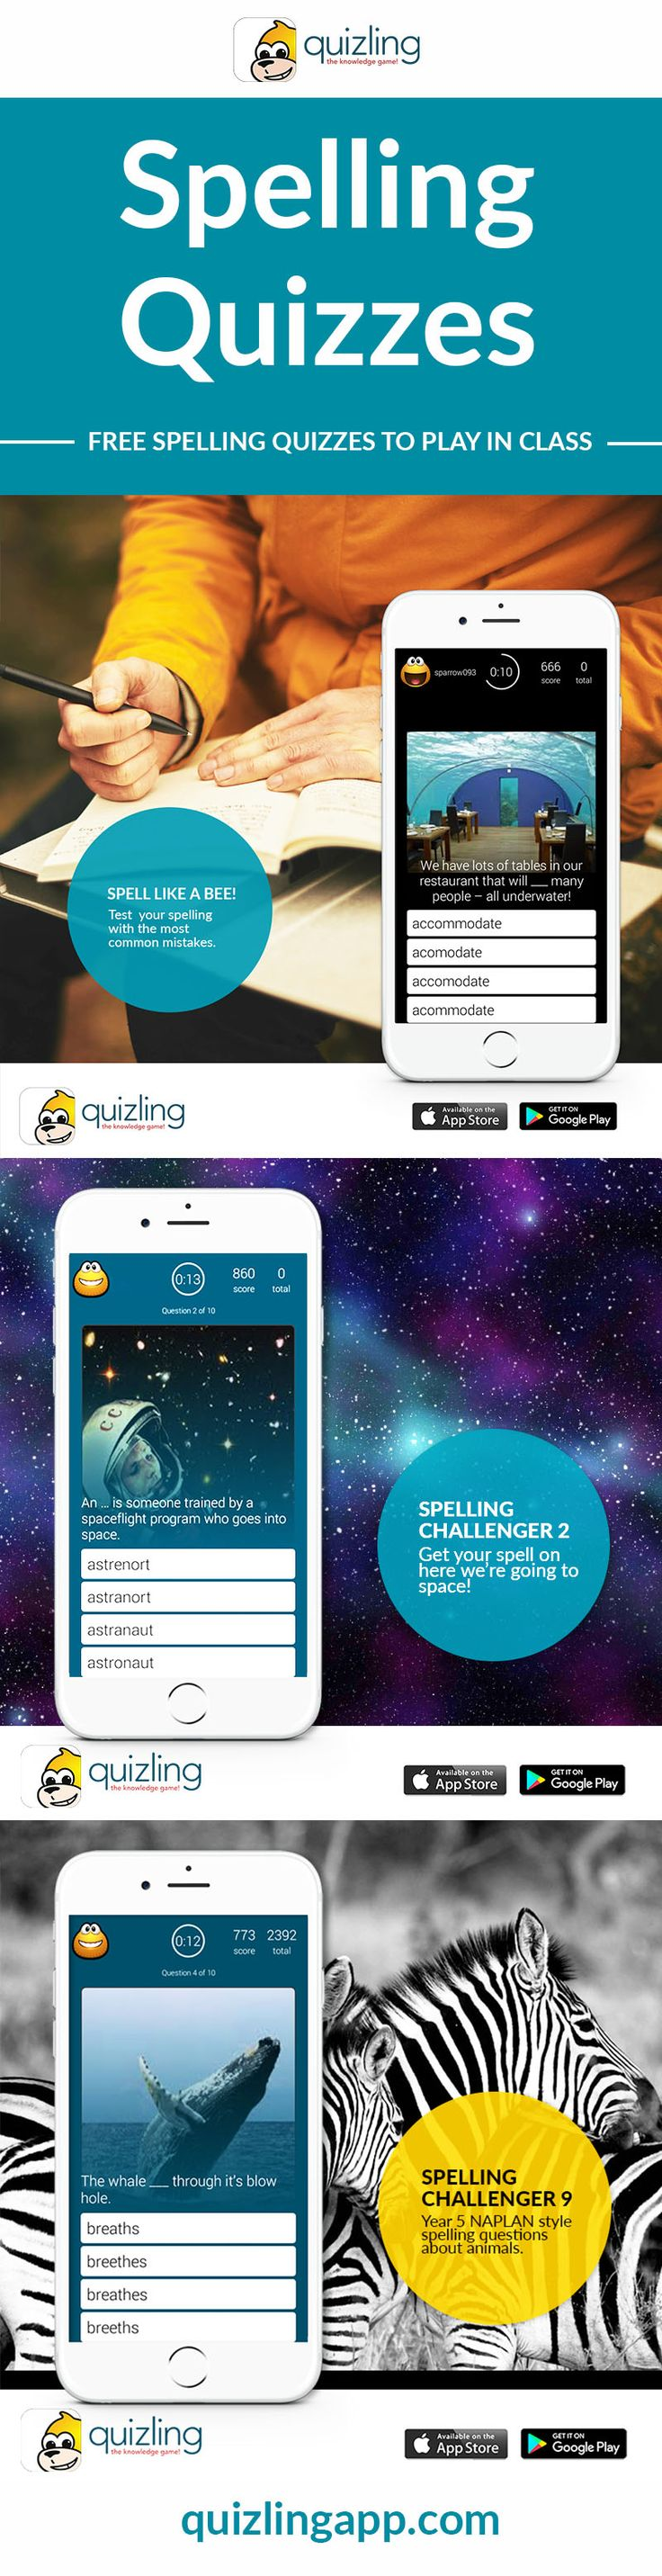 Excellent Free spelling quizzes to help students or children at home practice their spelling skills. Great for teachers looking for fun resources they can use to engage the class.